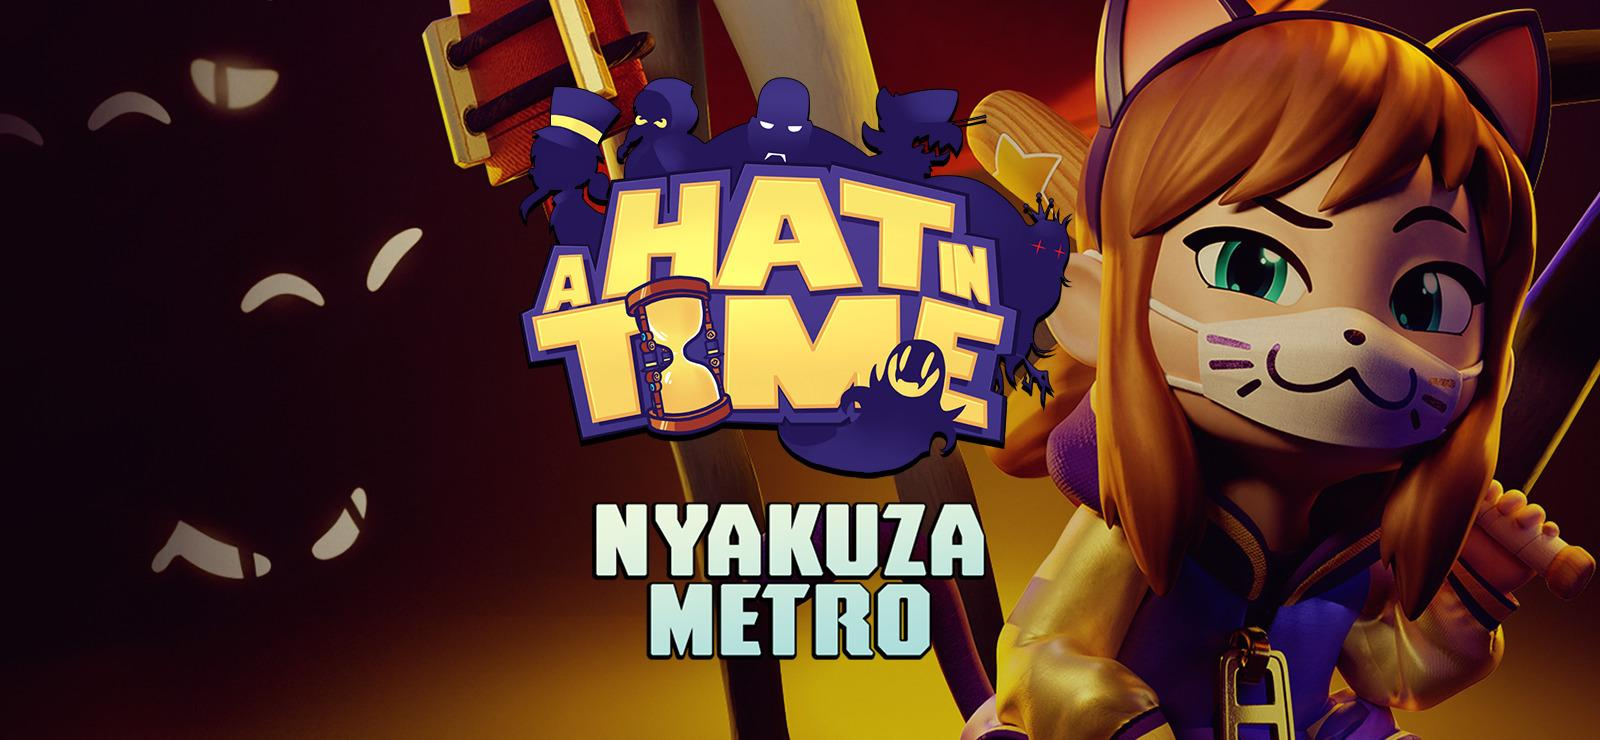 A Hat In Time Nyakuza Metro Wallpapers - Wallpaper Cave